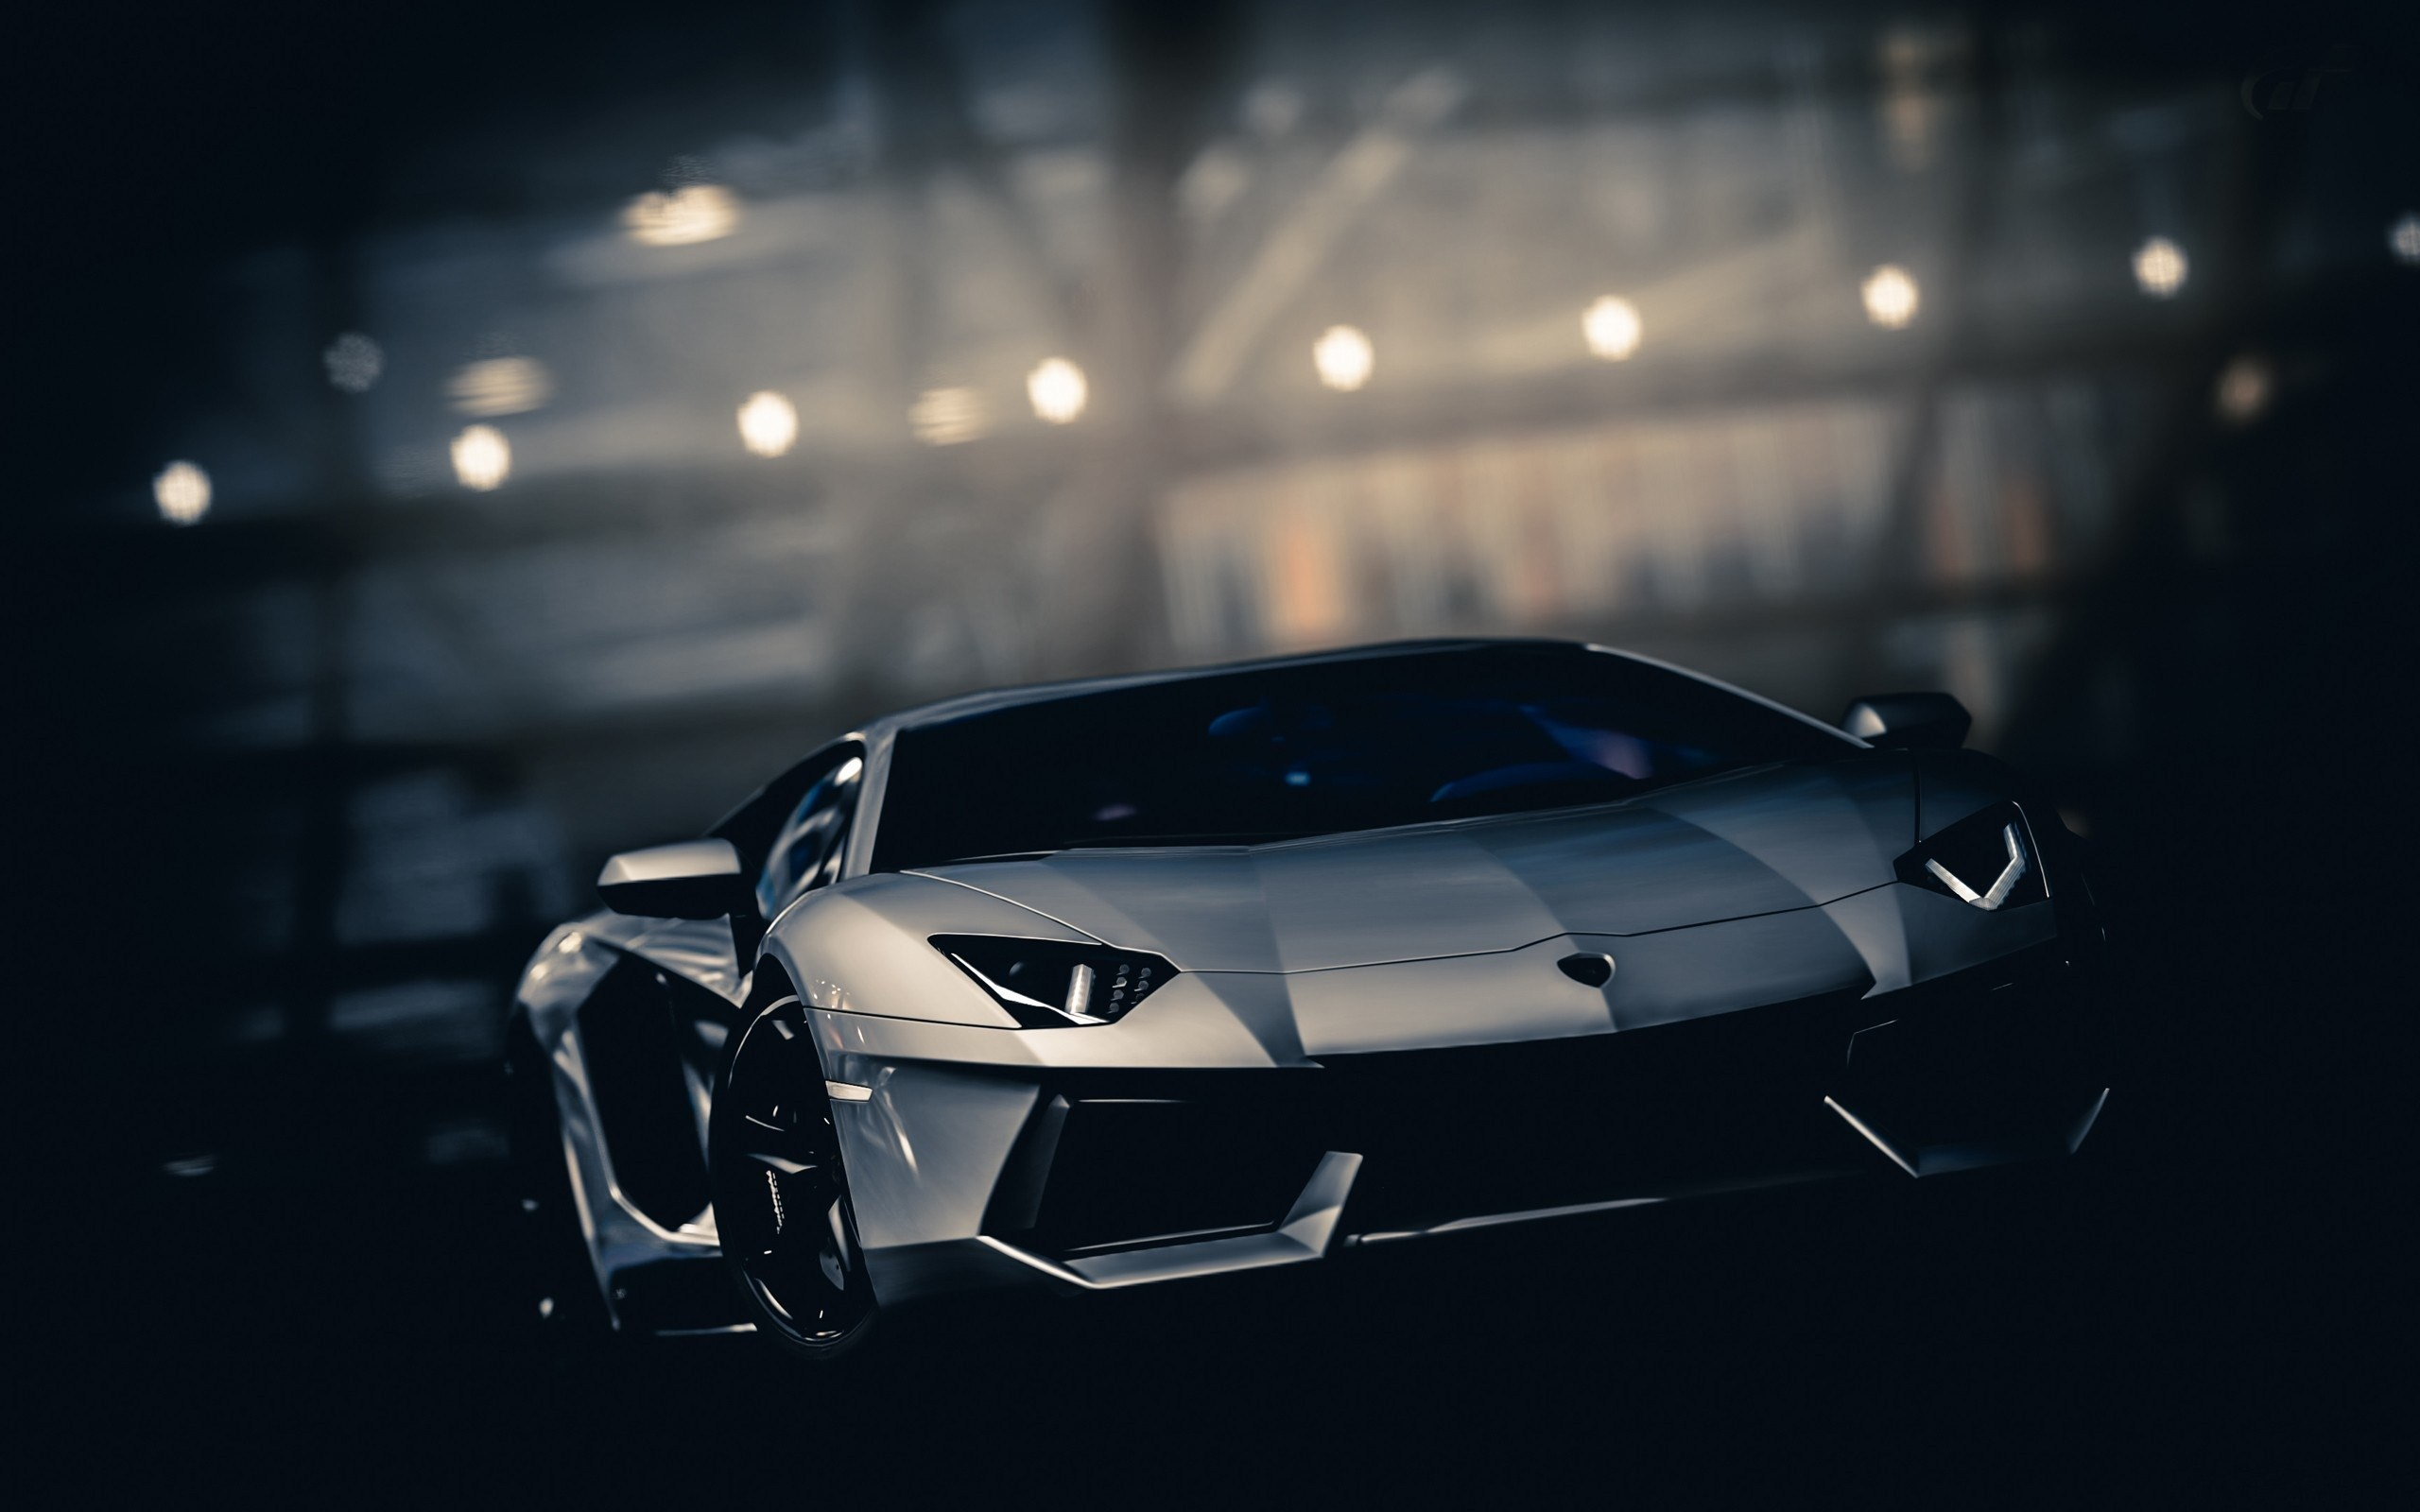 Lamborghini Aventador Wallpaper Hd